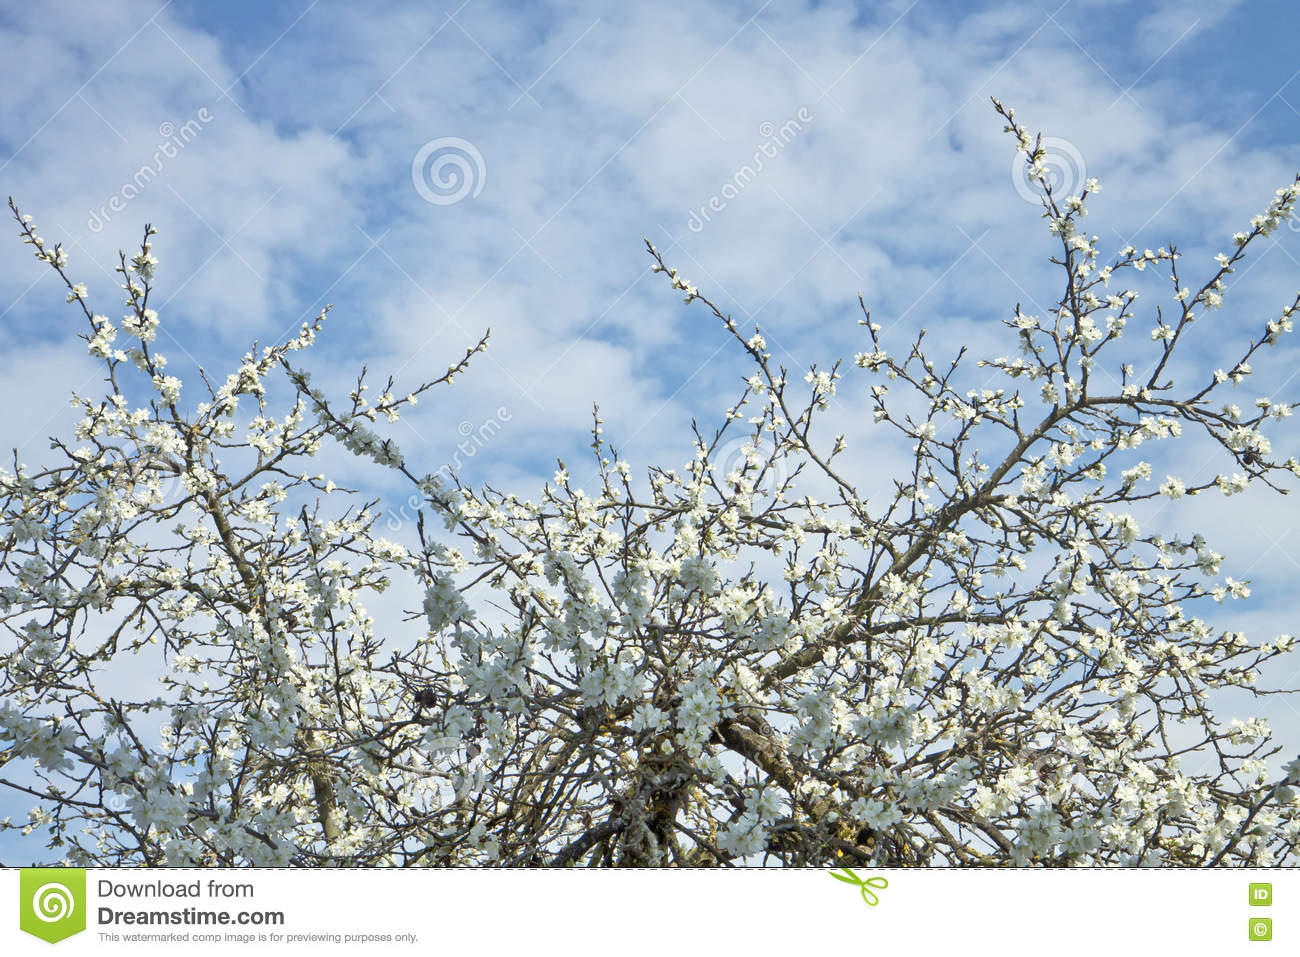 White plum tree flower texture and blue sky stock image image of white plum tree flower texture and blue sky izmirmasajfo